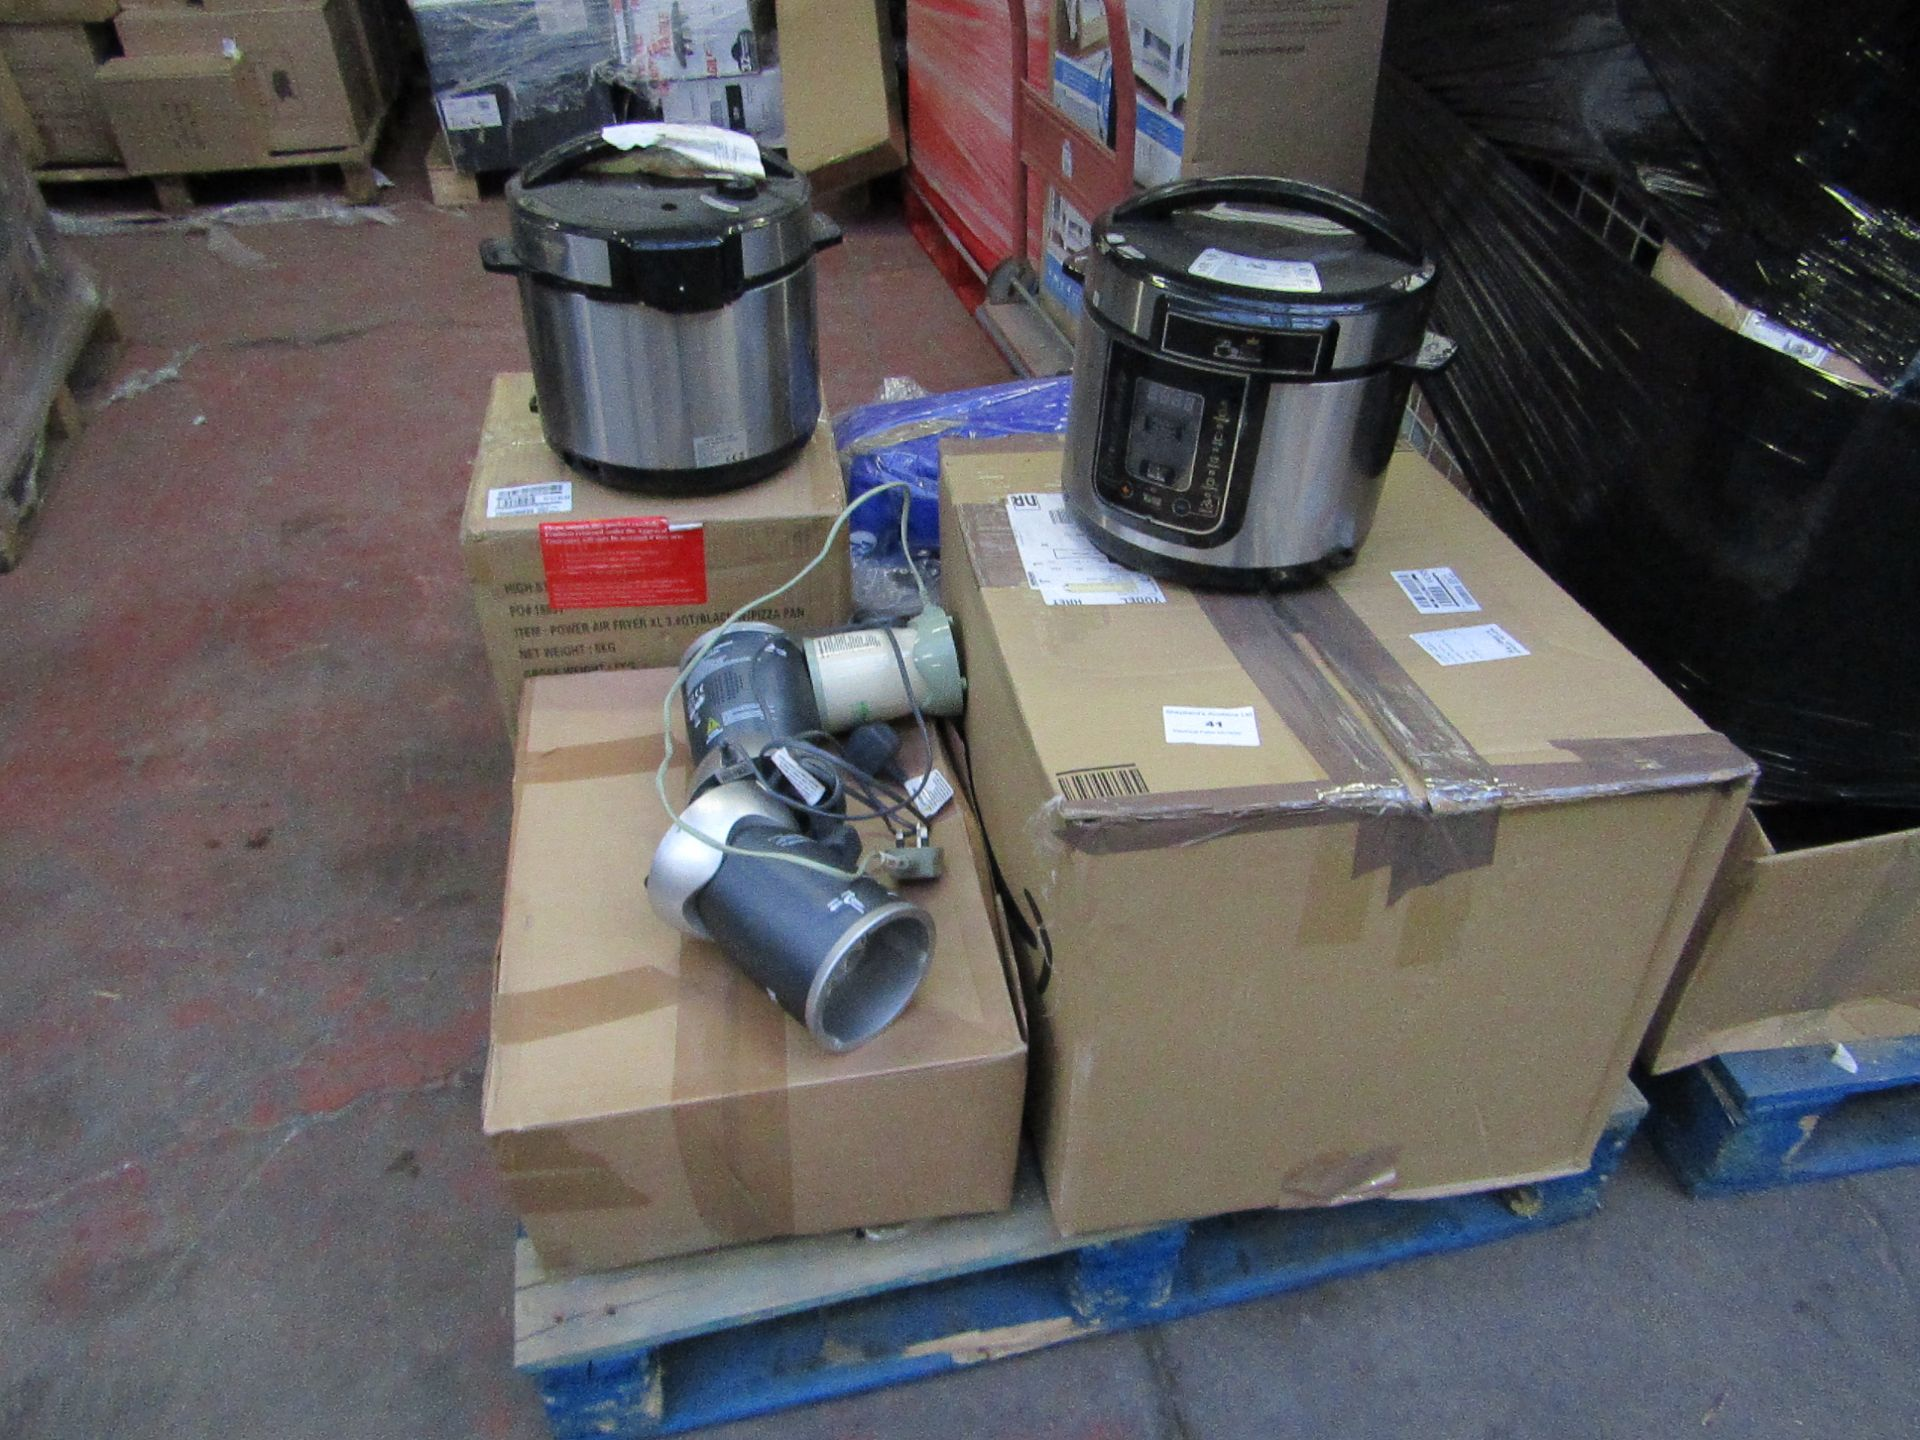 Small pallet of uncollected raw customer return electricals.